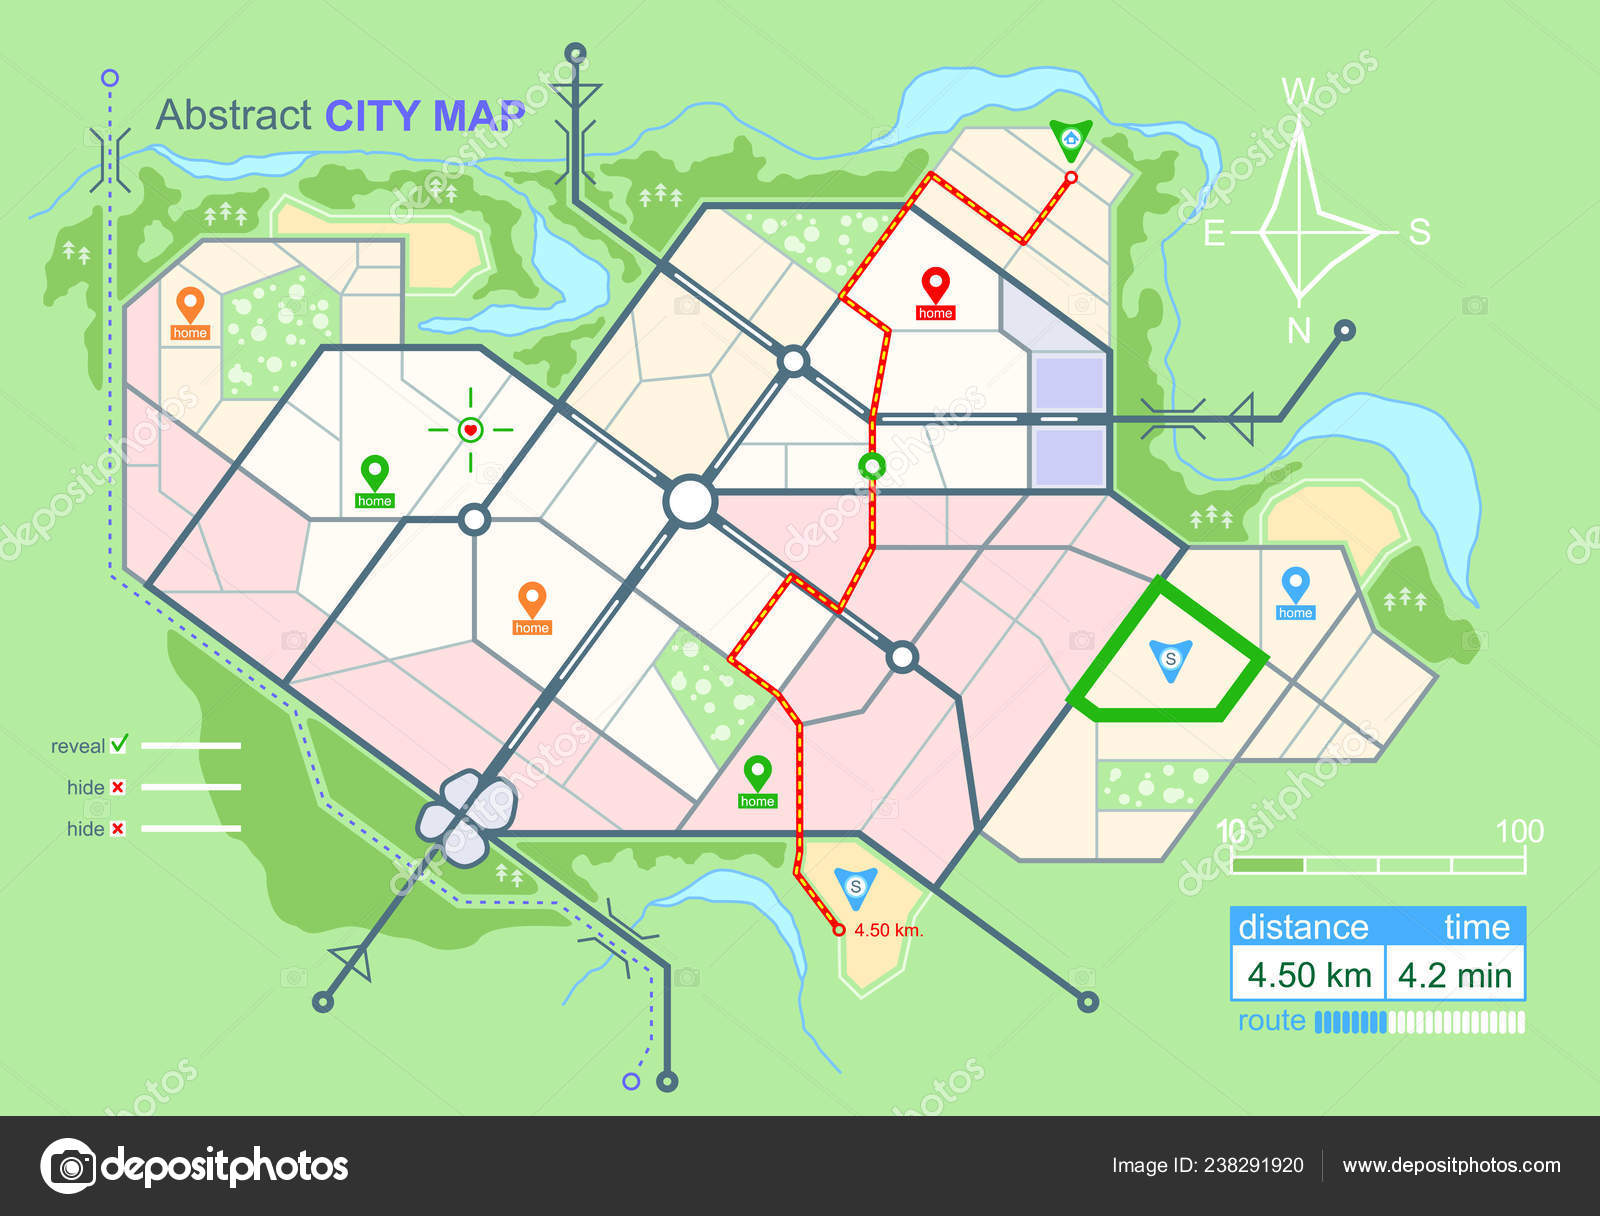 Generic Map Abstract City Urban Environment Scheme Town Streets Plan on